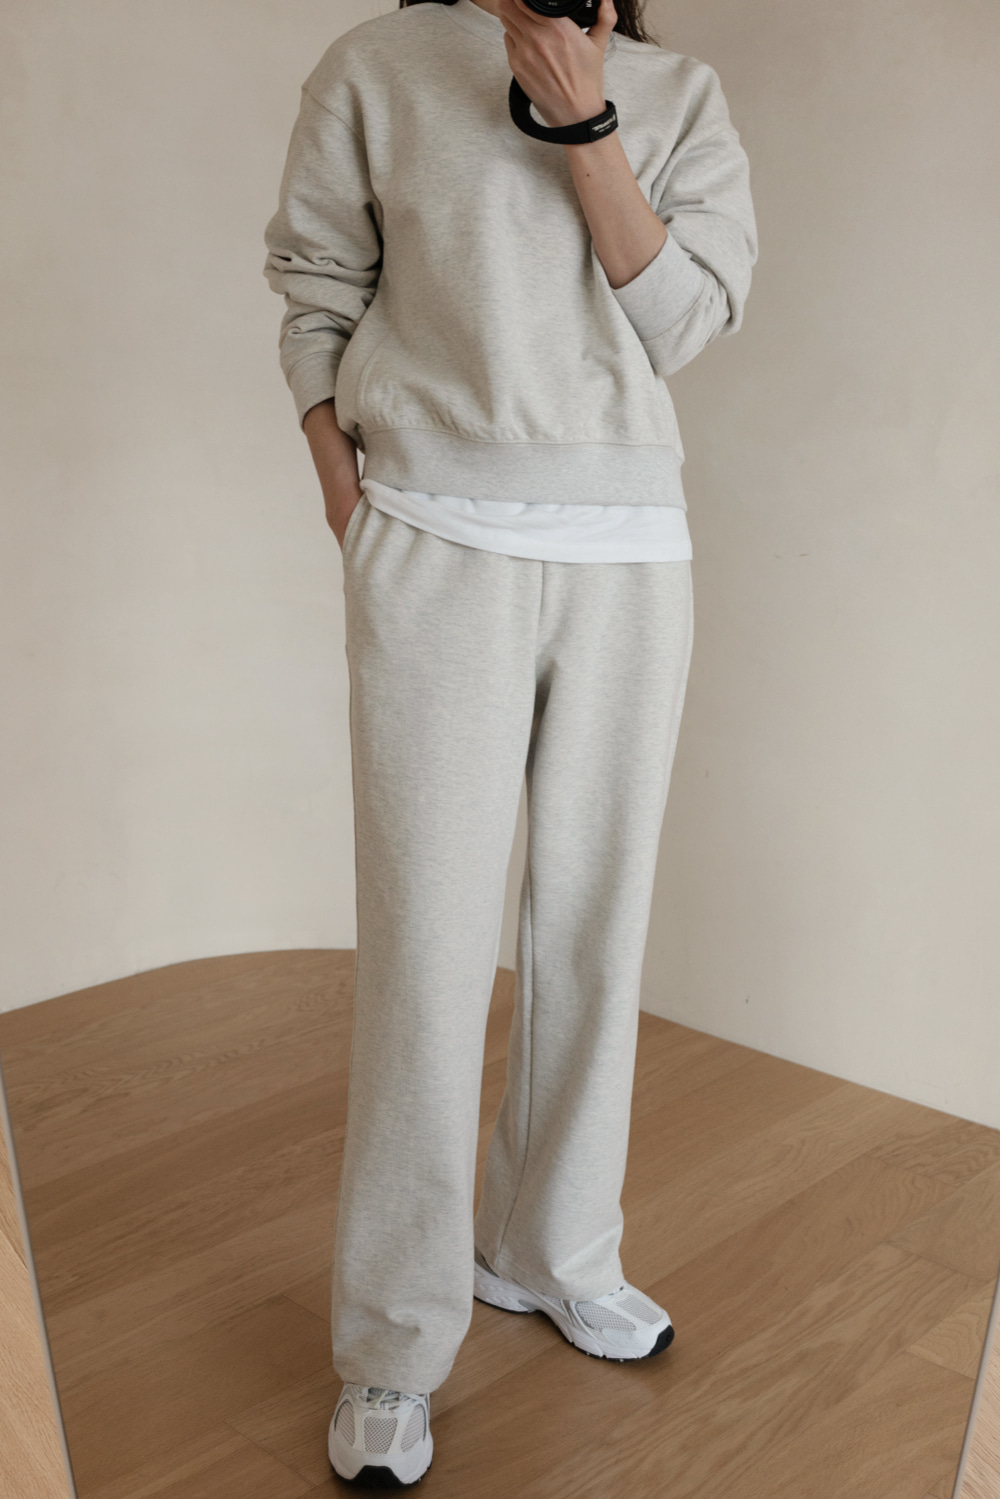 9489_Cotton Sweatpants